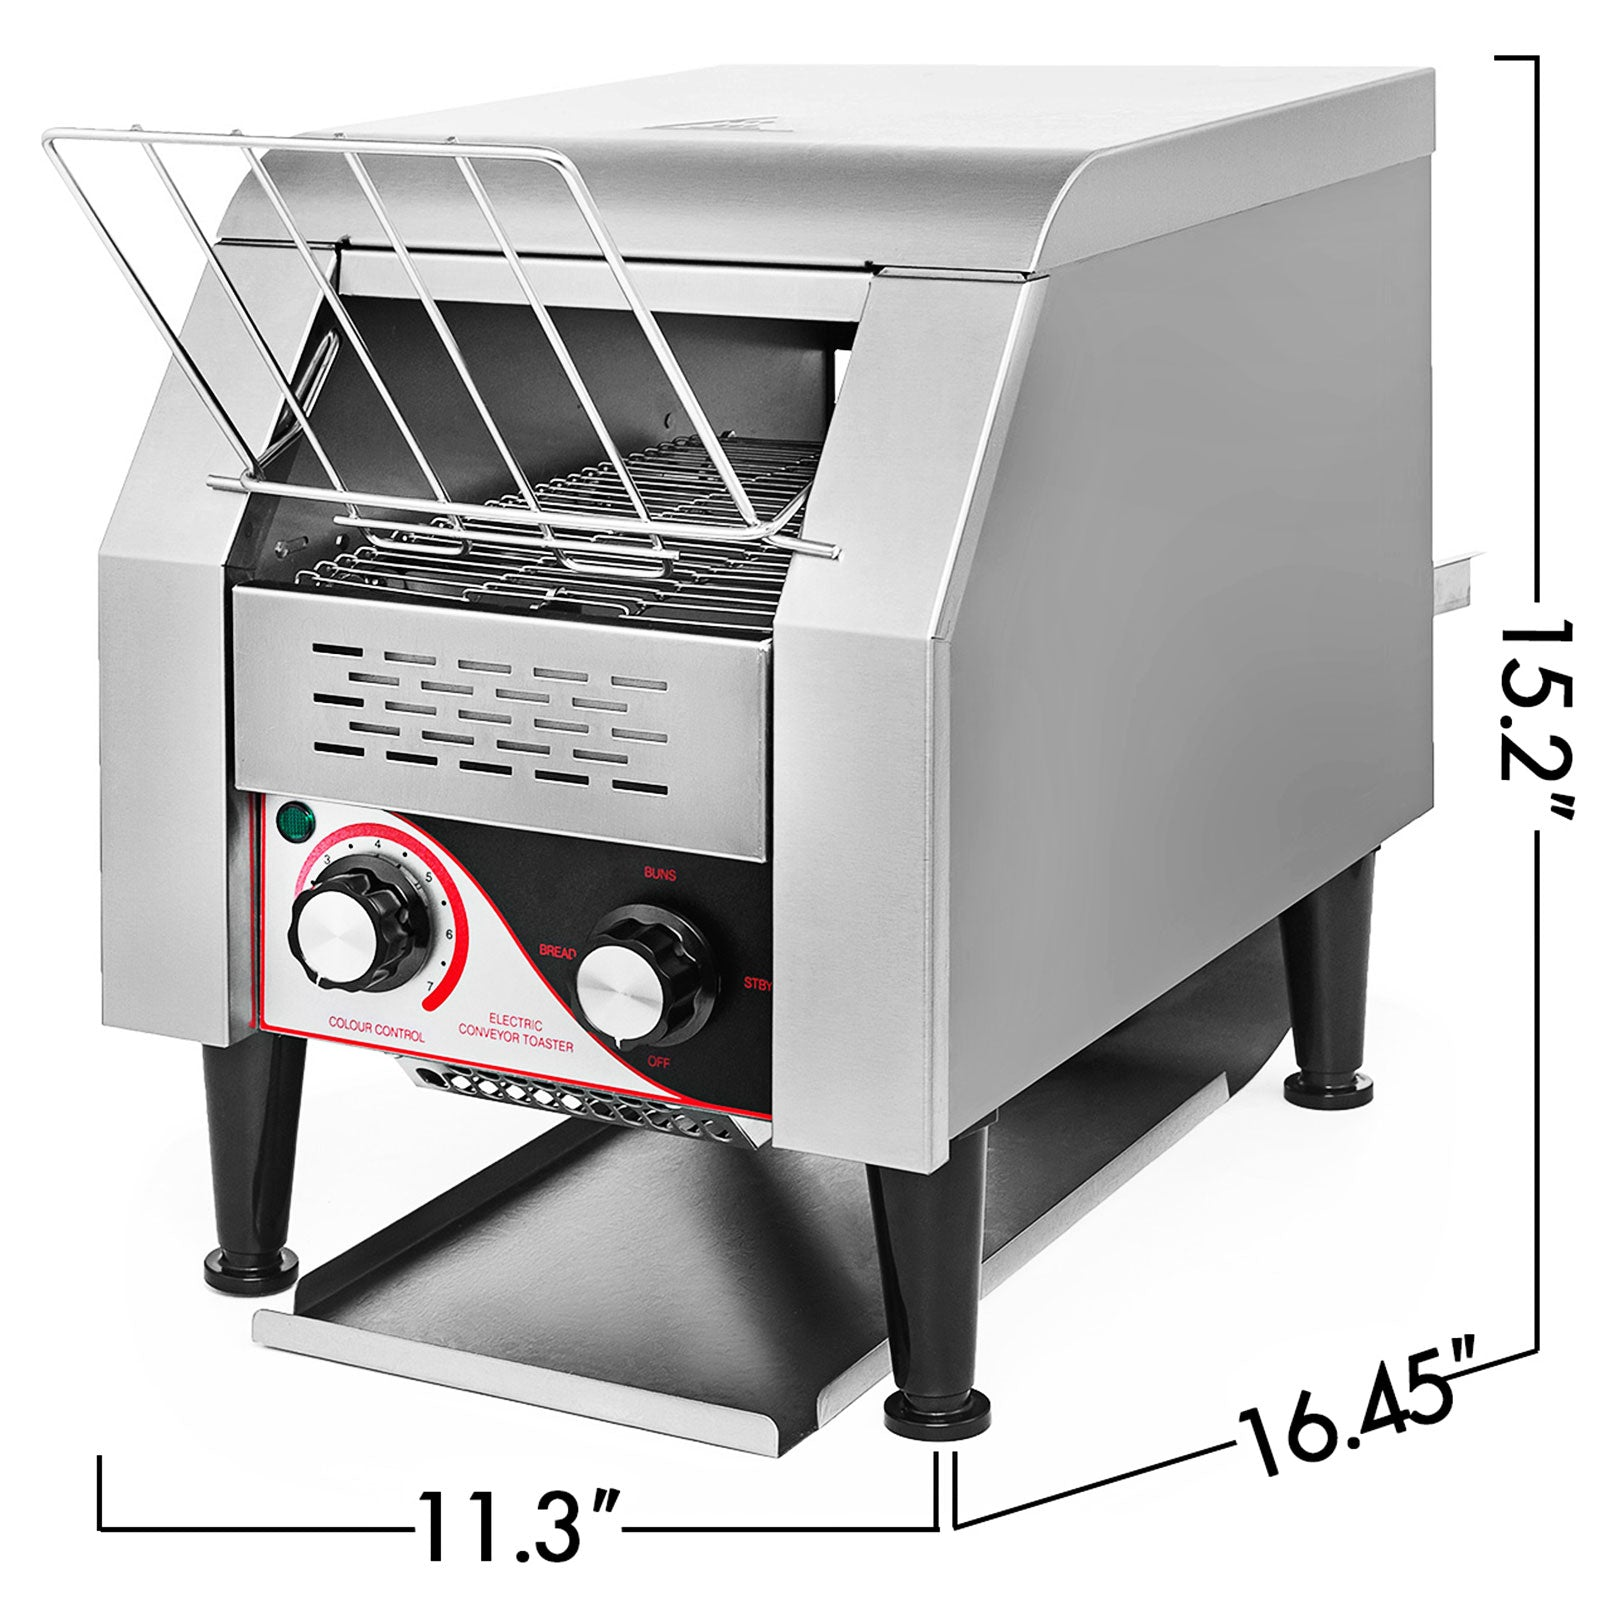 Commercial Conveyor Toaster 150pcs/h Electric Conveyor Toaster Stainless Steel